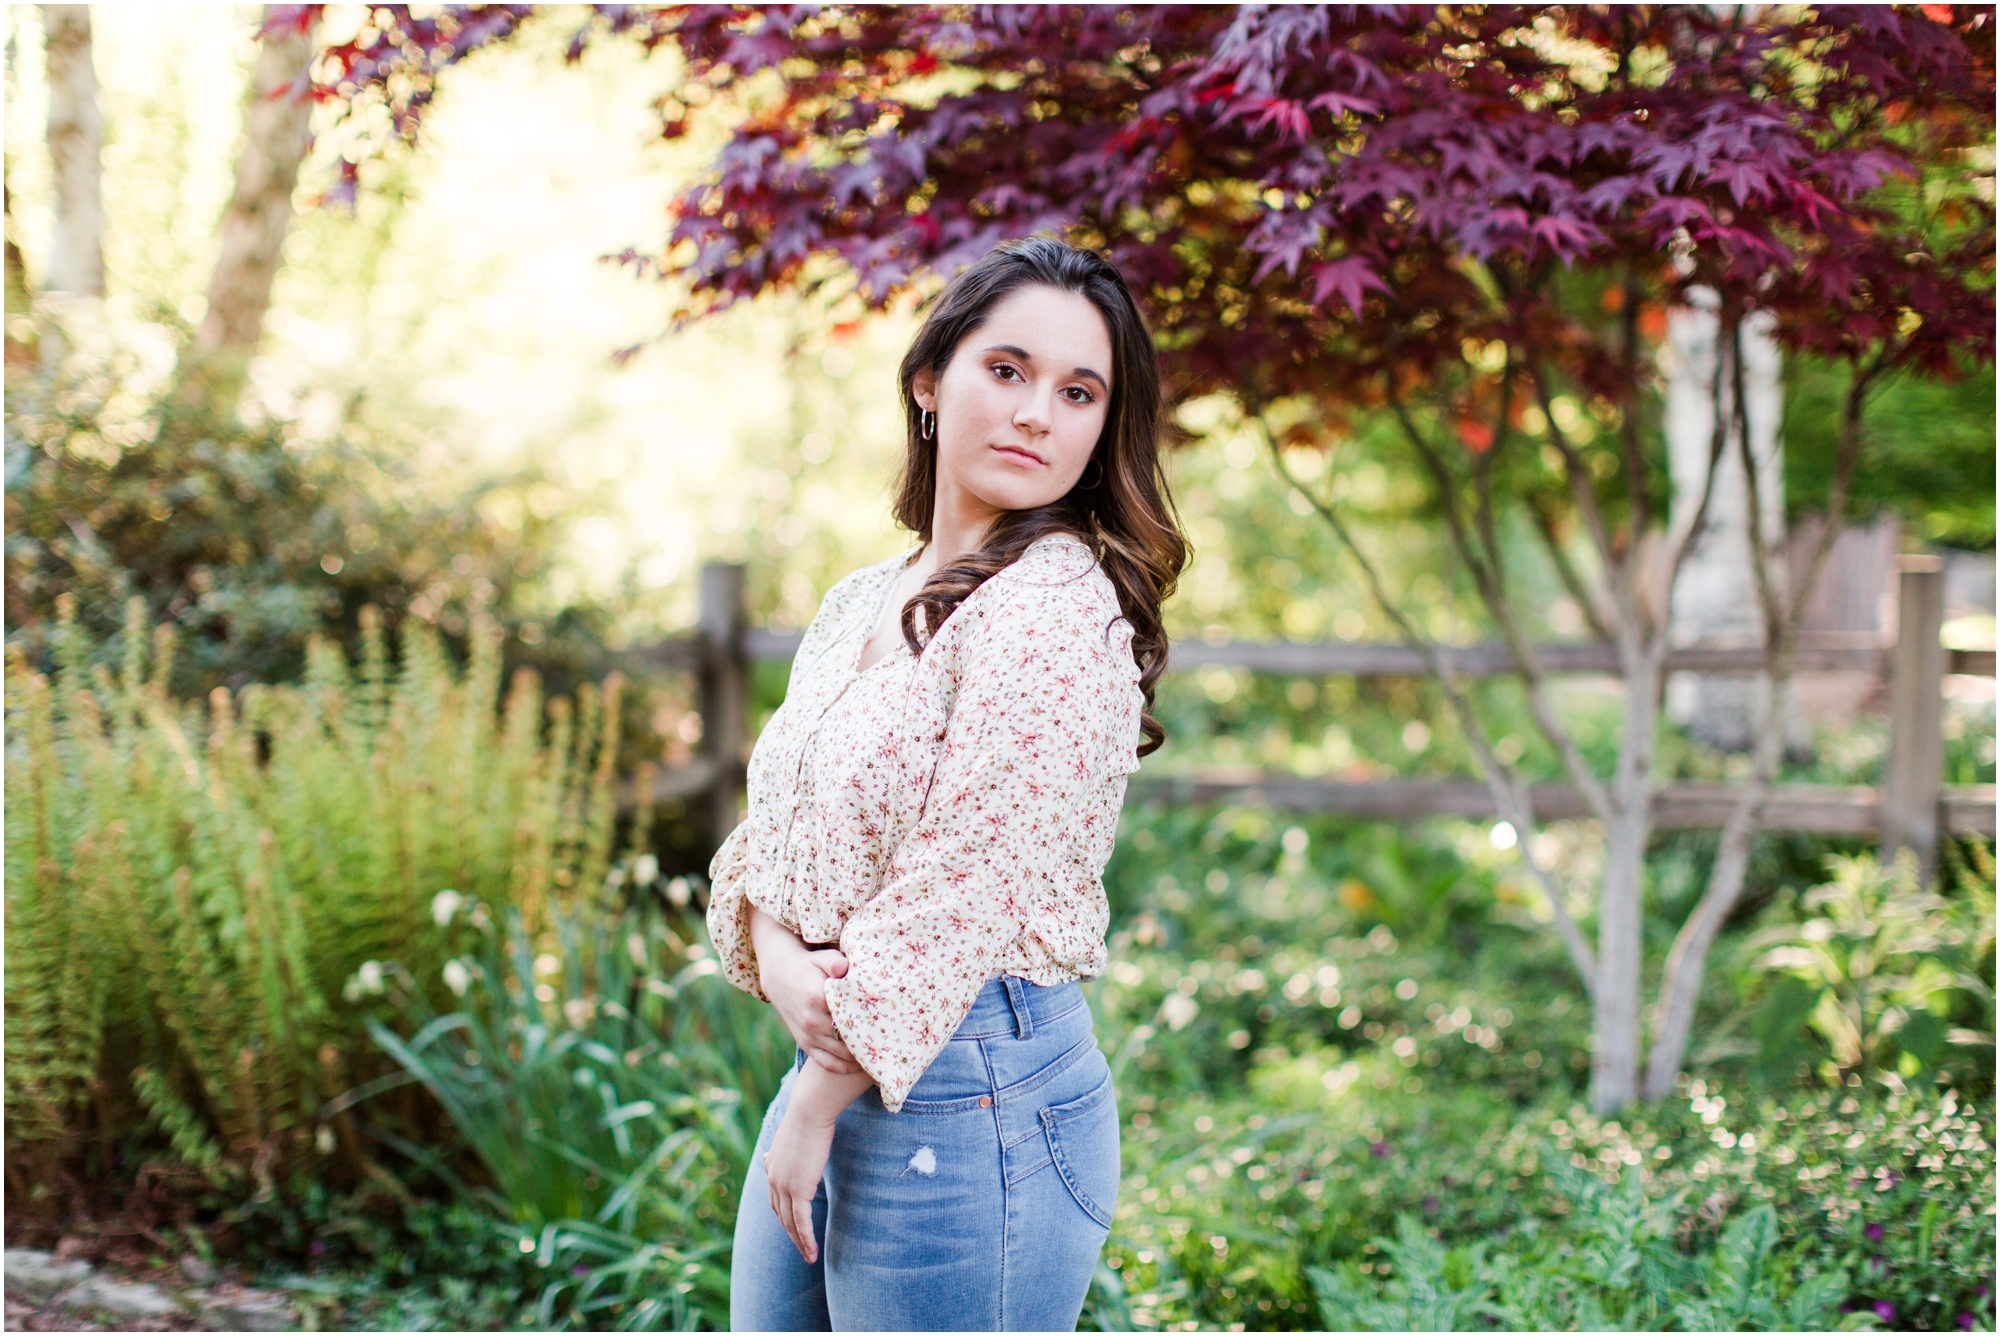 Senior Portraits at Point Defiance Park in Tacoma.  Photos by Briana Calderon Photography based in the greater Seattle Tacoma Area._1110.jpg